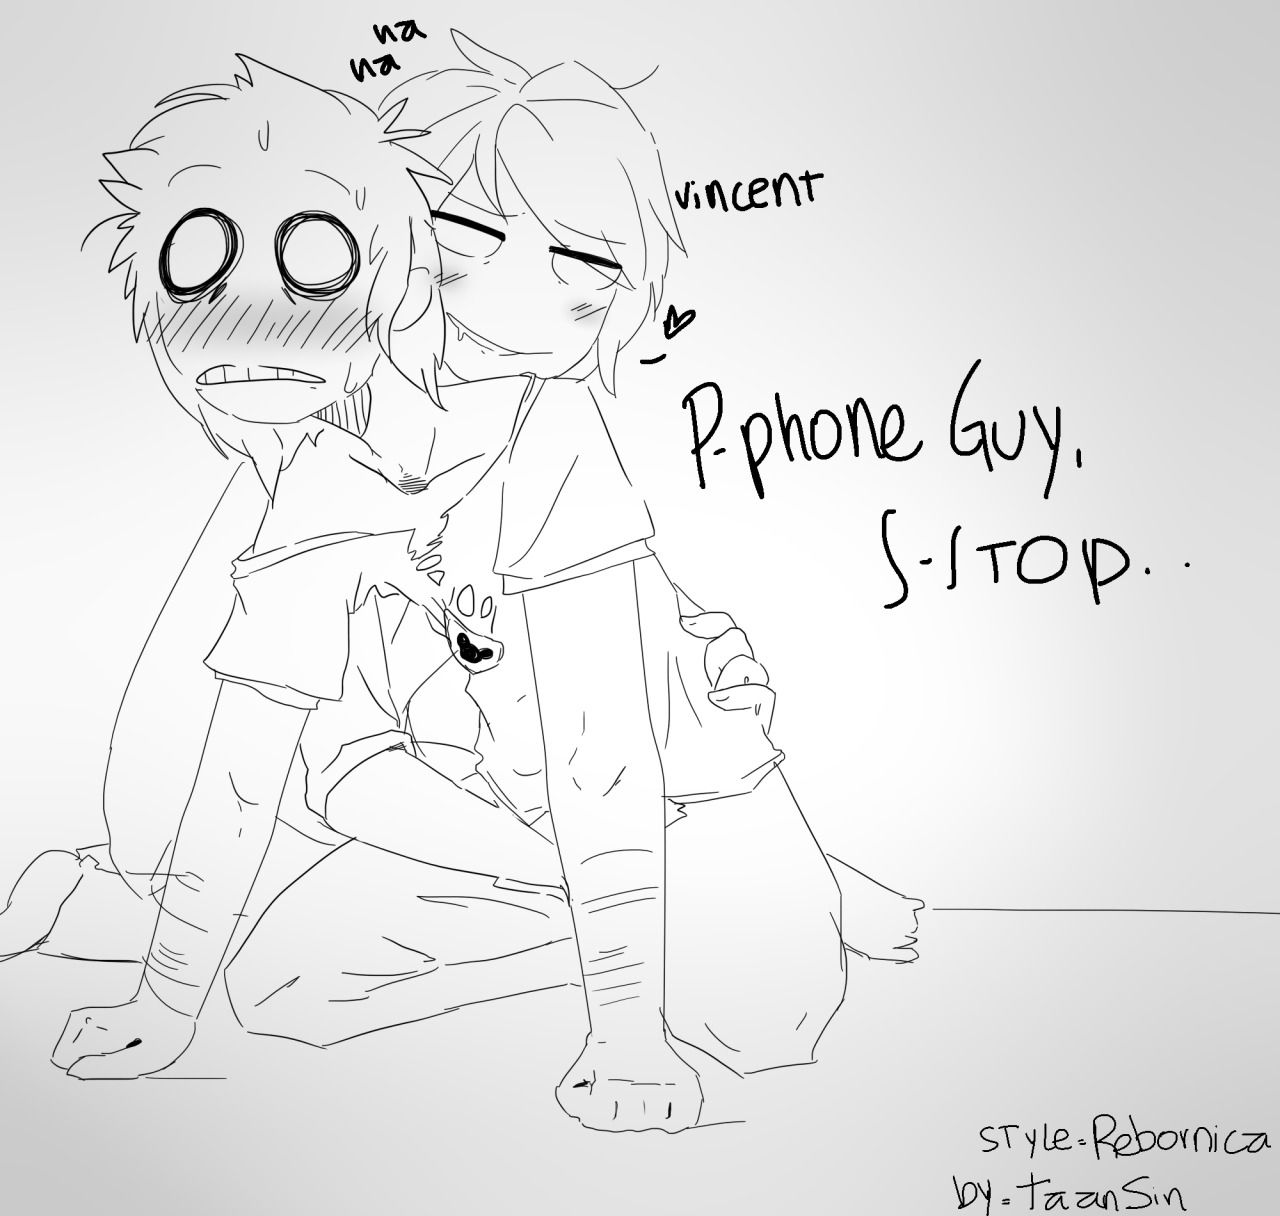 Phone guy x purple guy fanfic lemon - Purple Guy X Phone Guy Recherche Google